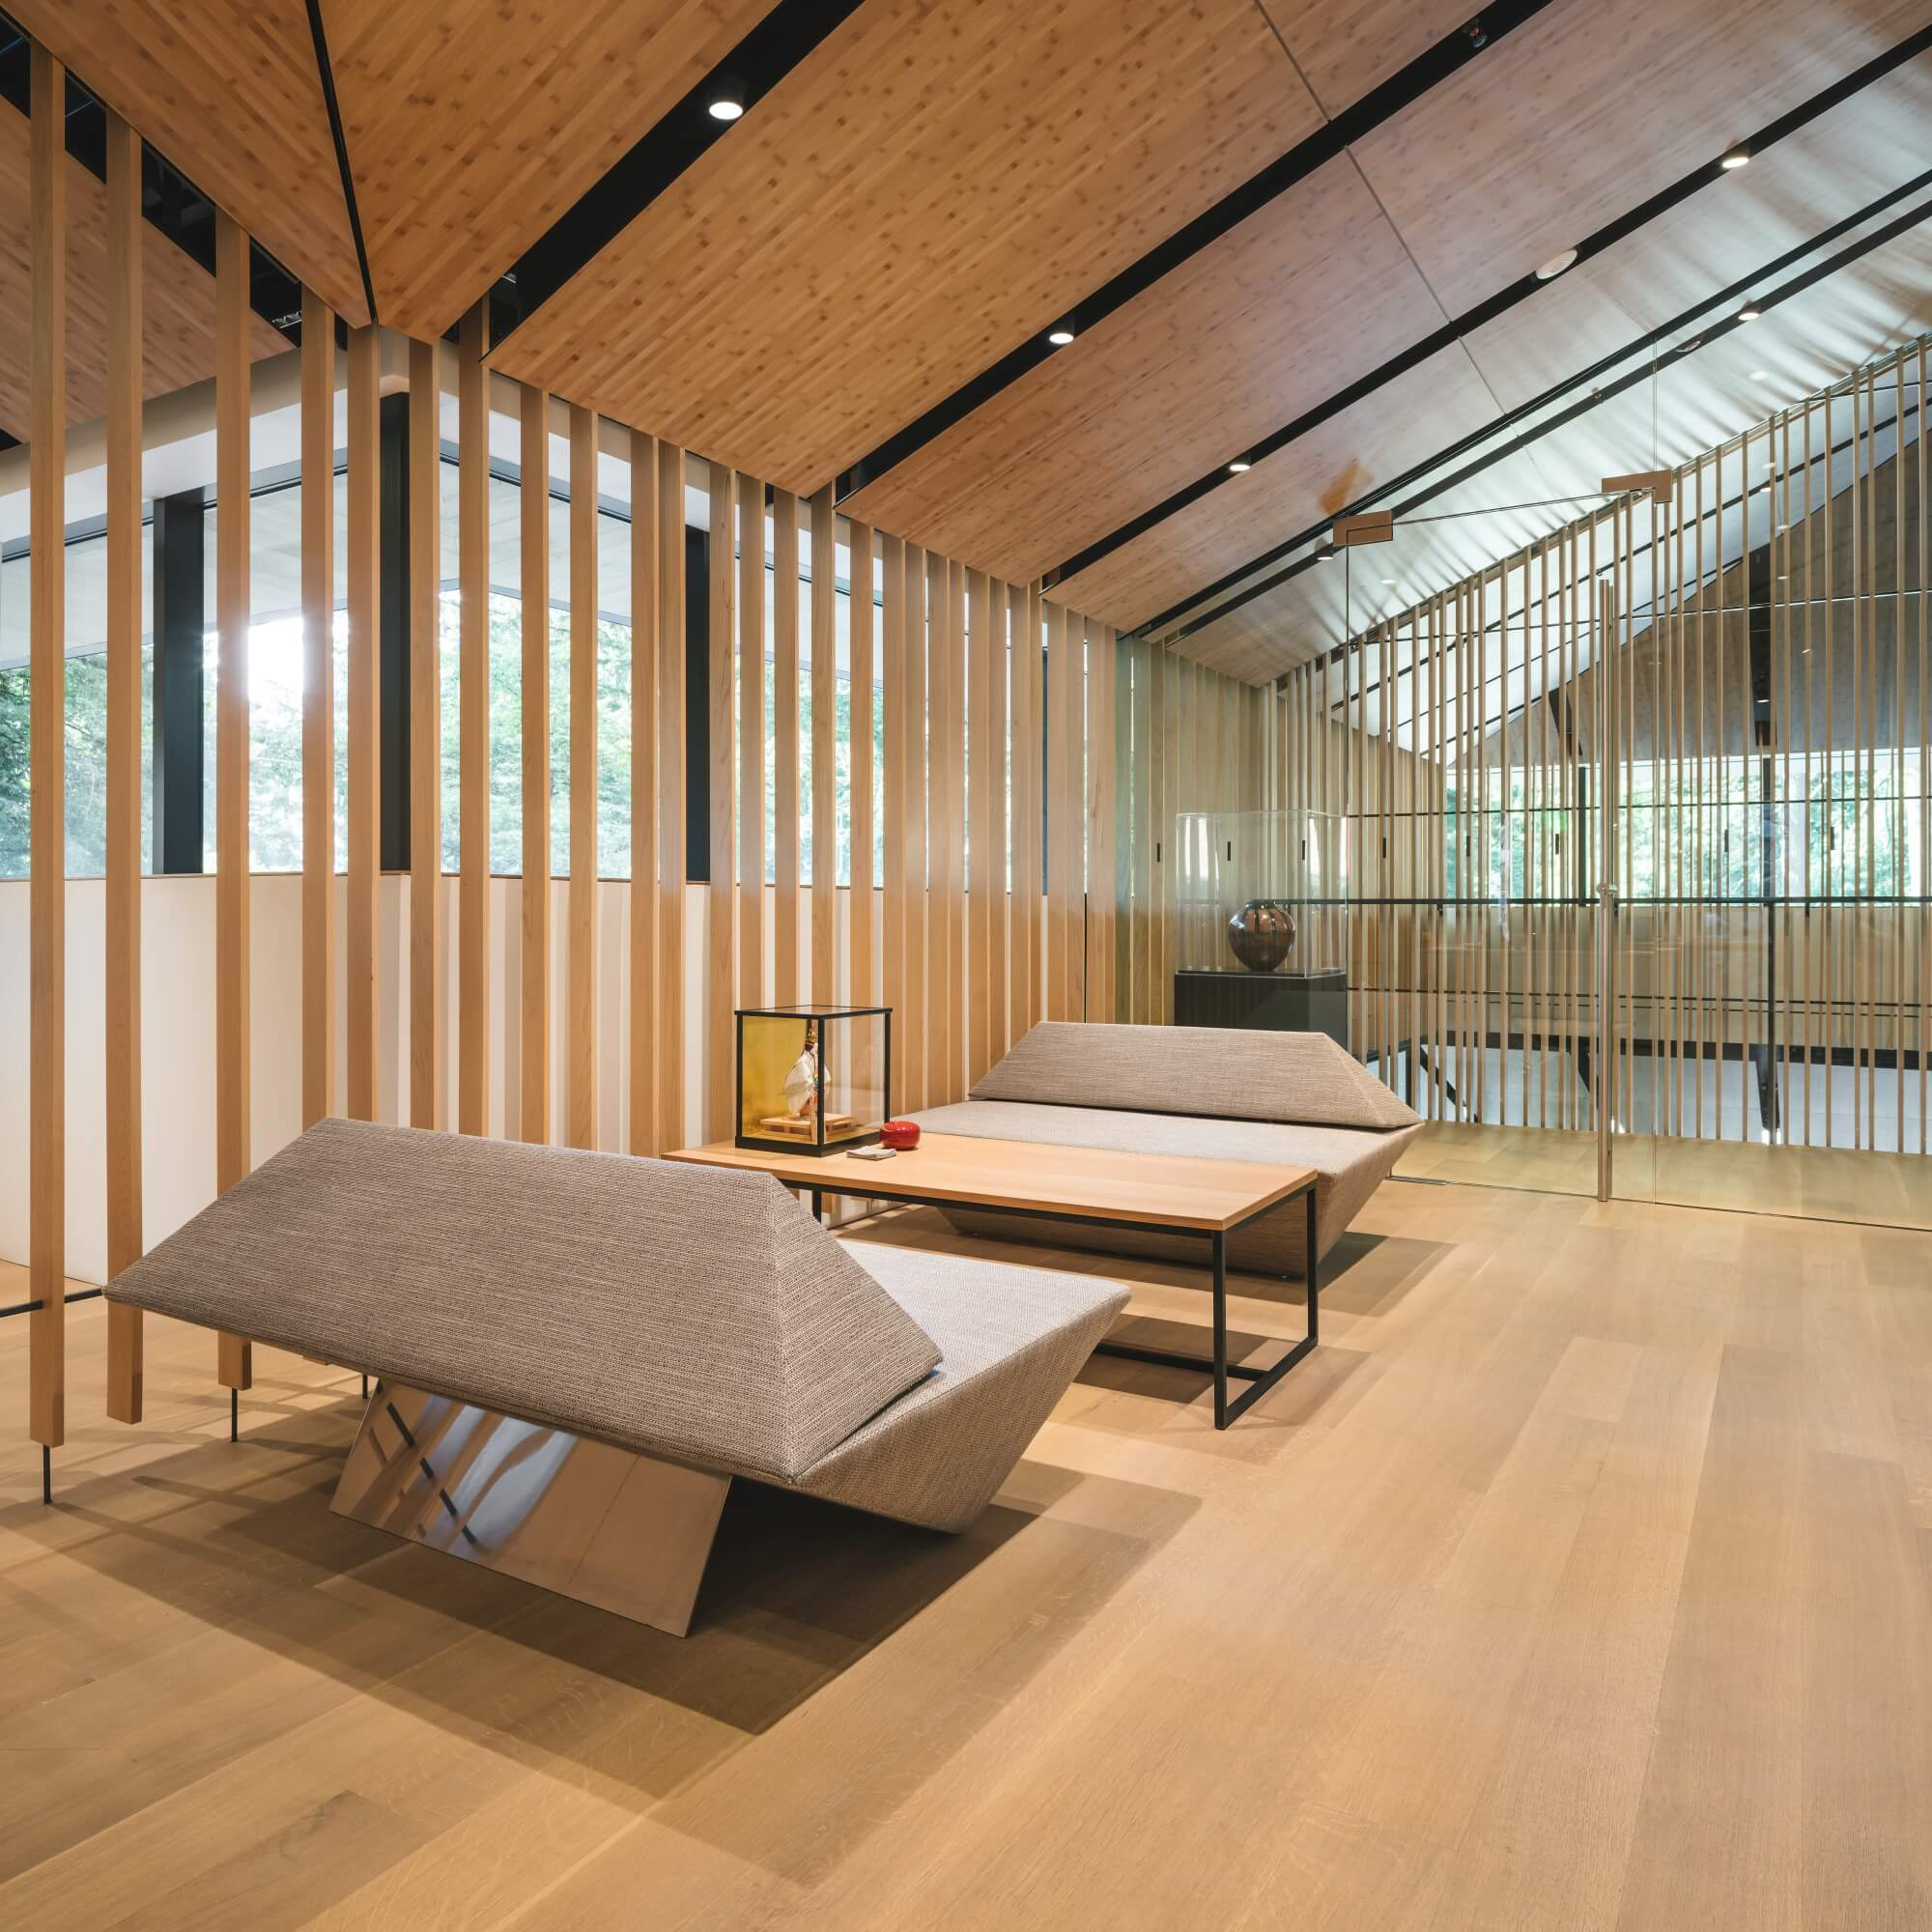 Wide plank wood floors in a Japanese style modern home.